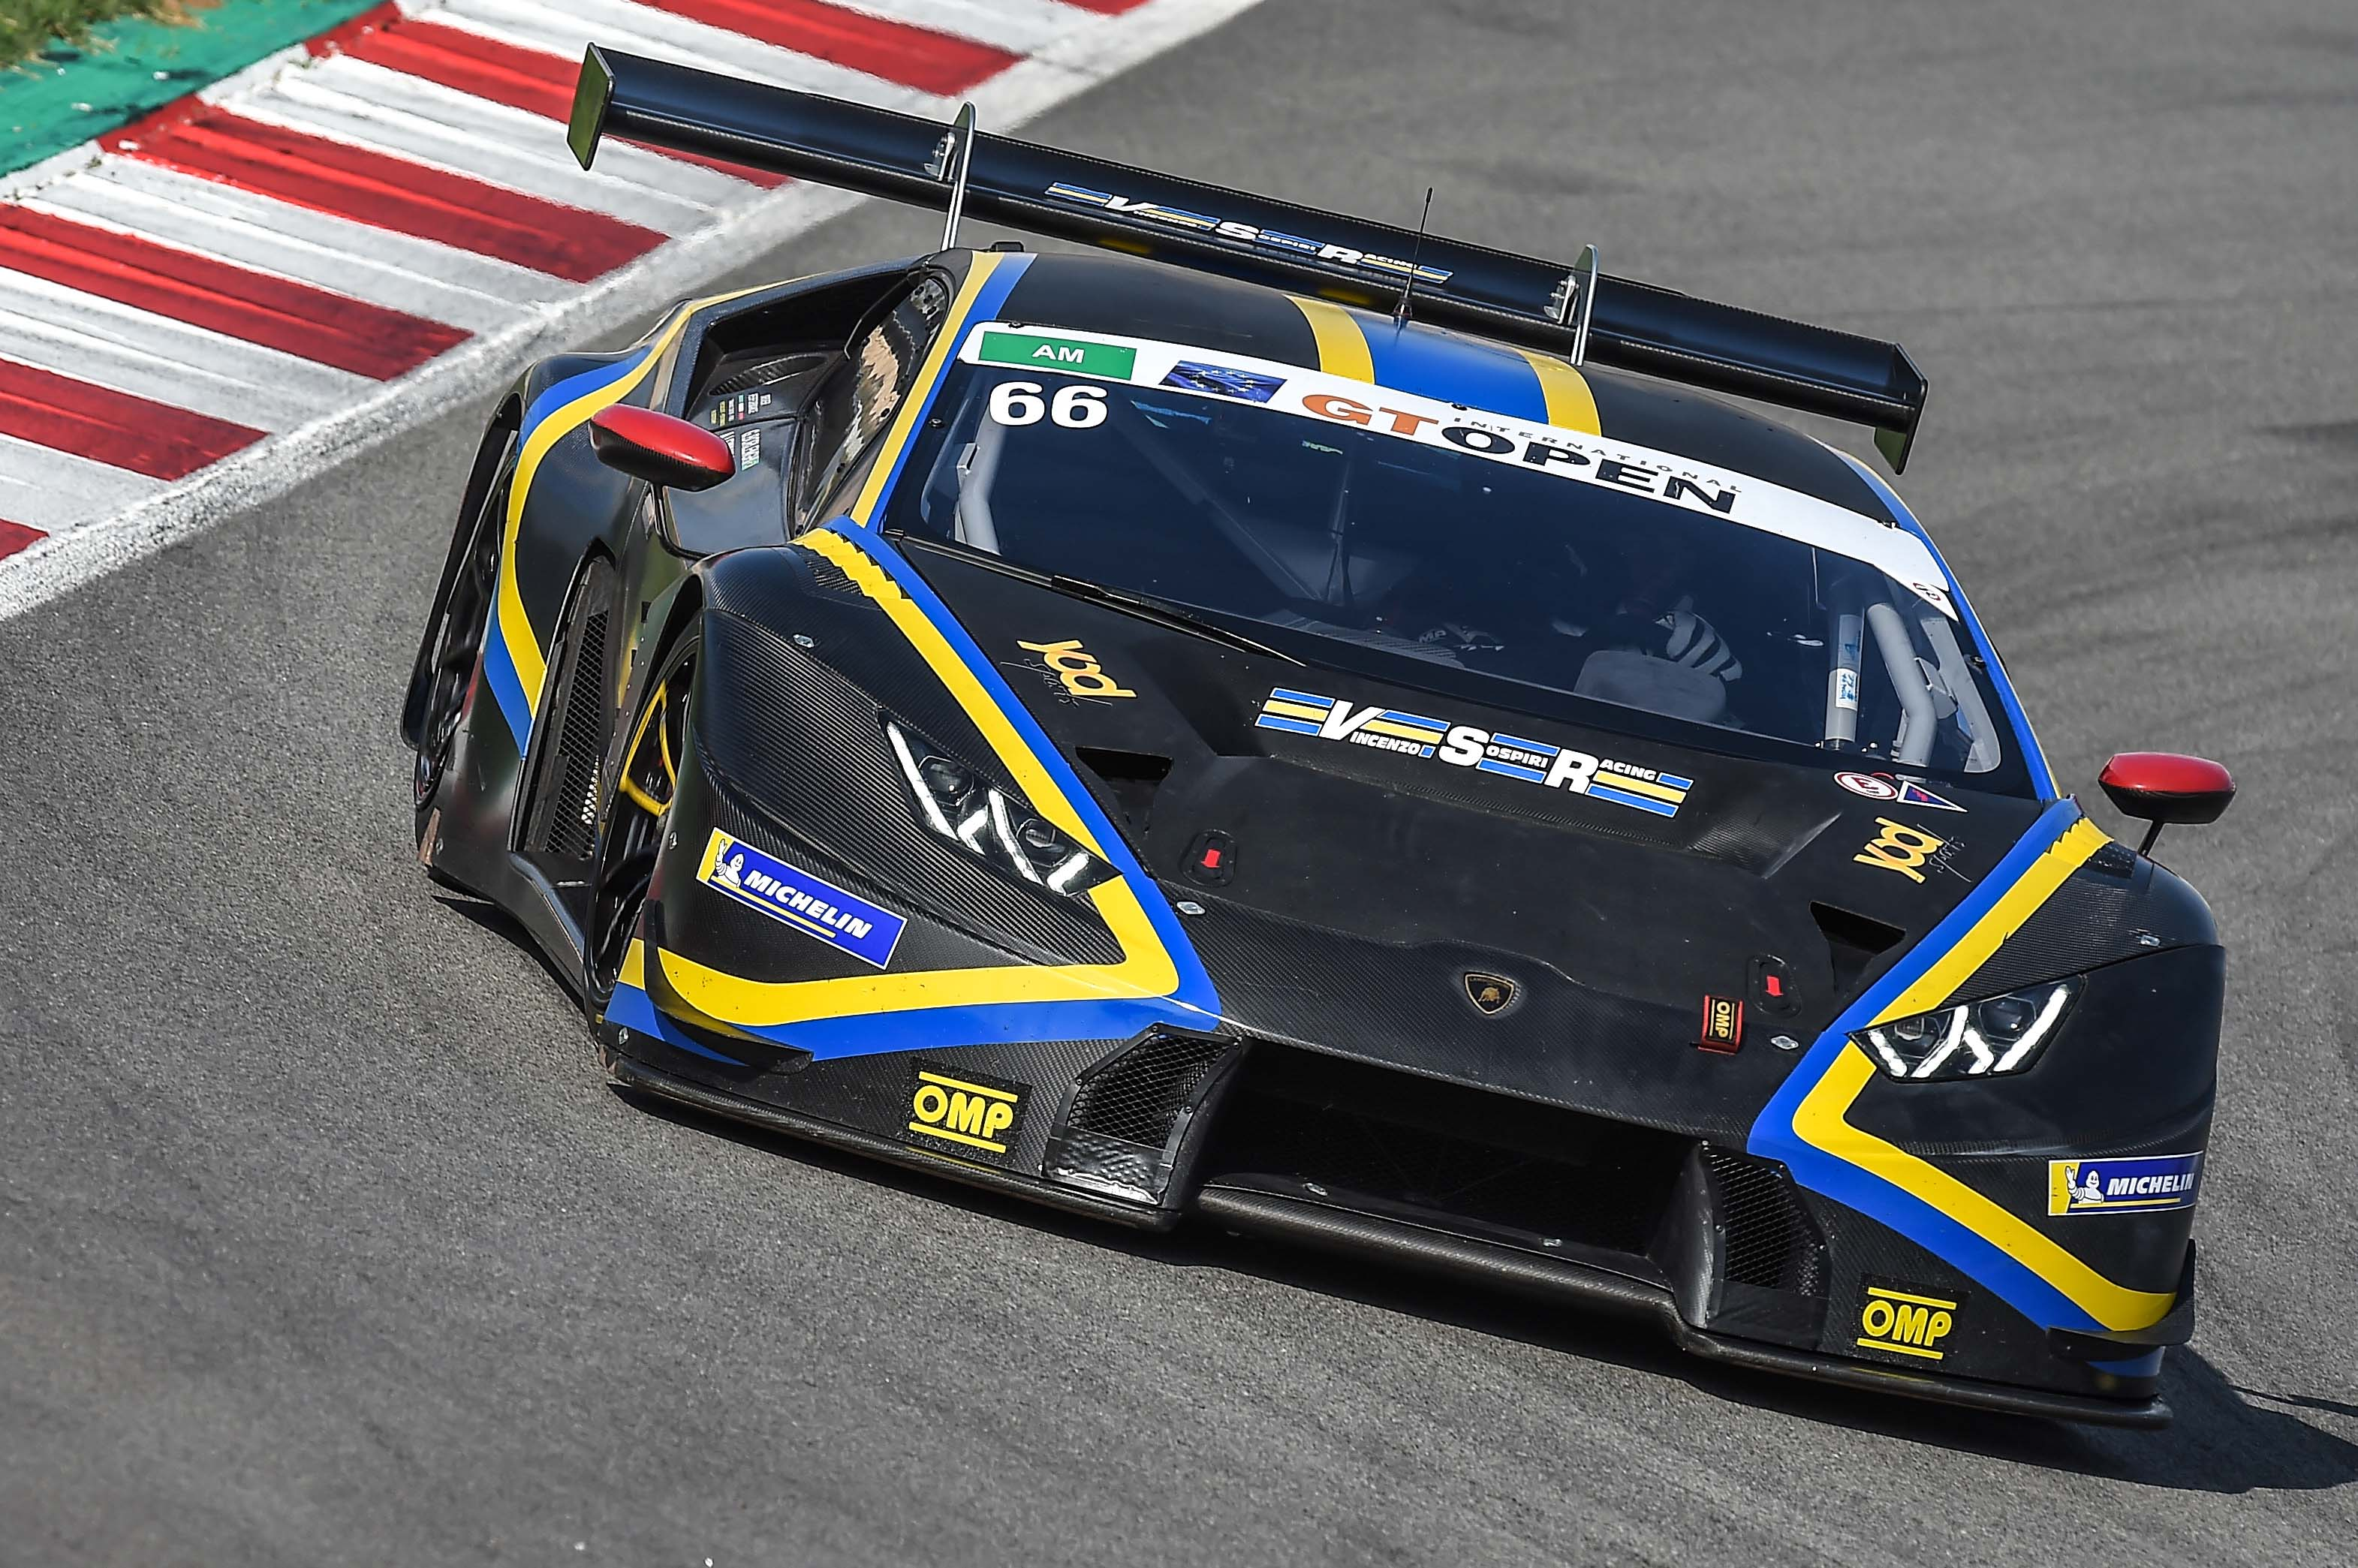 CHAMPIONS! BORLENGHI AND LEWANDOWSKI TAKE INTERNATIONAL GT OPEN HONOURS AT BARCELONA